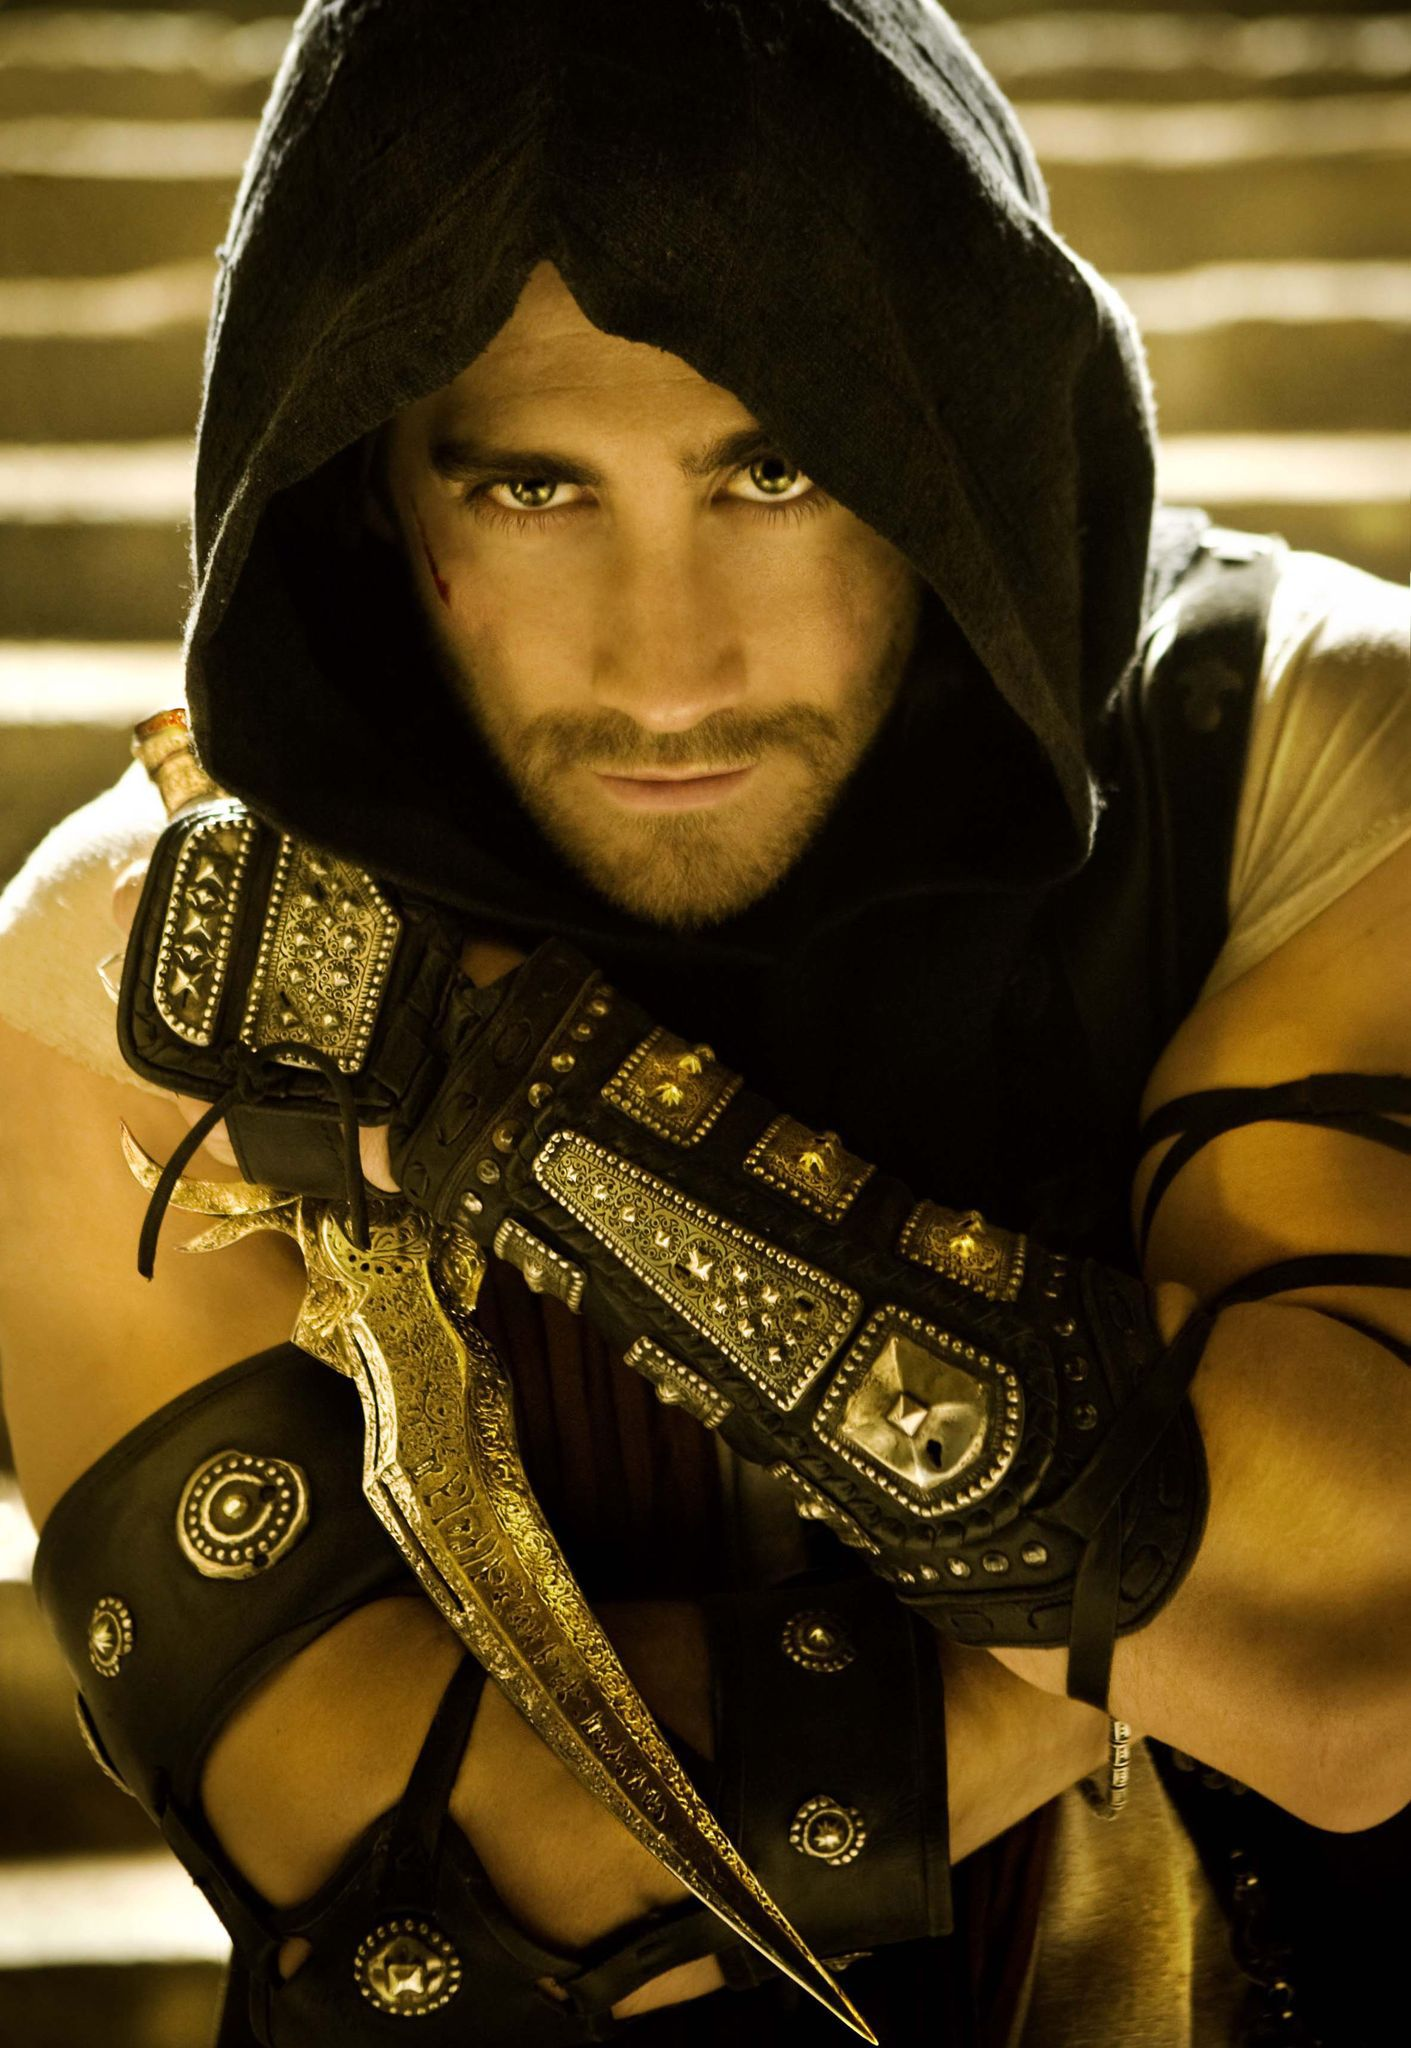 Boy hairstyle status jake gyllenhaal prince of persia  google search  pretty people